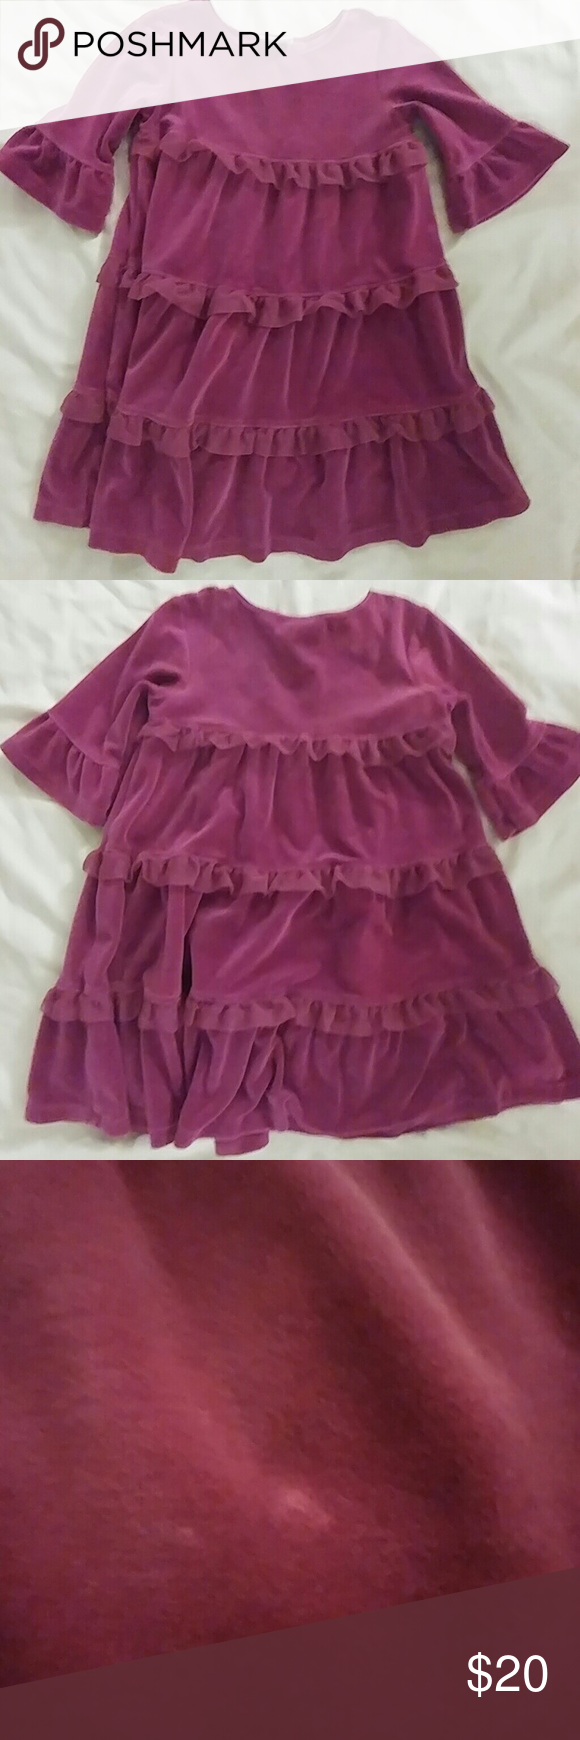 """Hanna Andersson """"Love to Twirl"""" magenta dress Lovely and sweet, this Hanna Andersson dress is perfect for the little girl in your life. In stylish magenta velour, it's decorated with 3 tiers of tulle ruffles. The sleeves are 3/4 length, there's satin trim around the neck, and it features a slightly raised waist.  The size is 110, which (according to Hanna Andersson's site) equals a US children size 5 - 6x. Hanna Andersson Dresses Casual"""